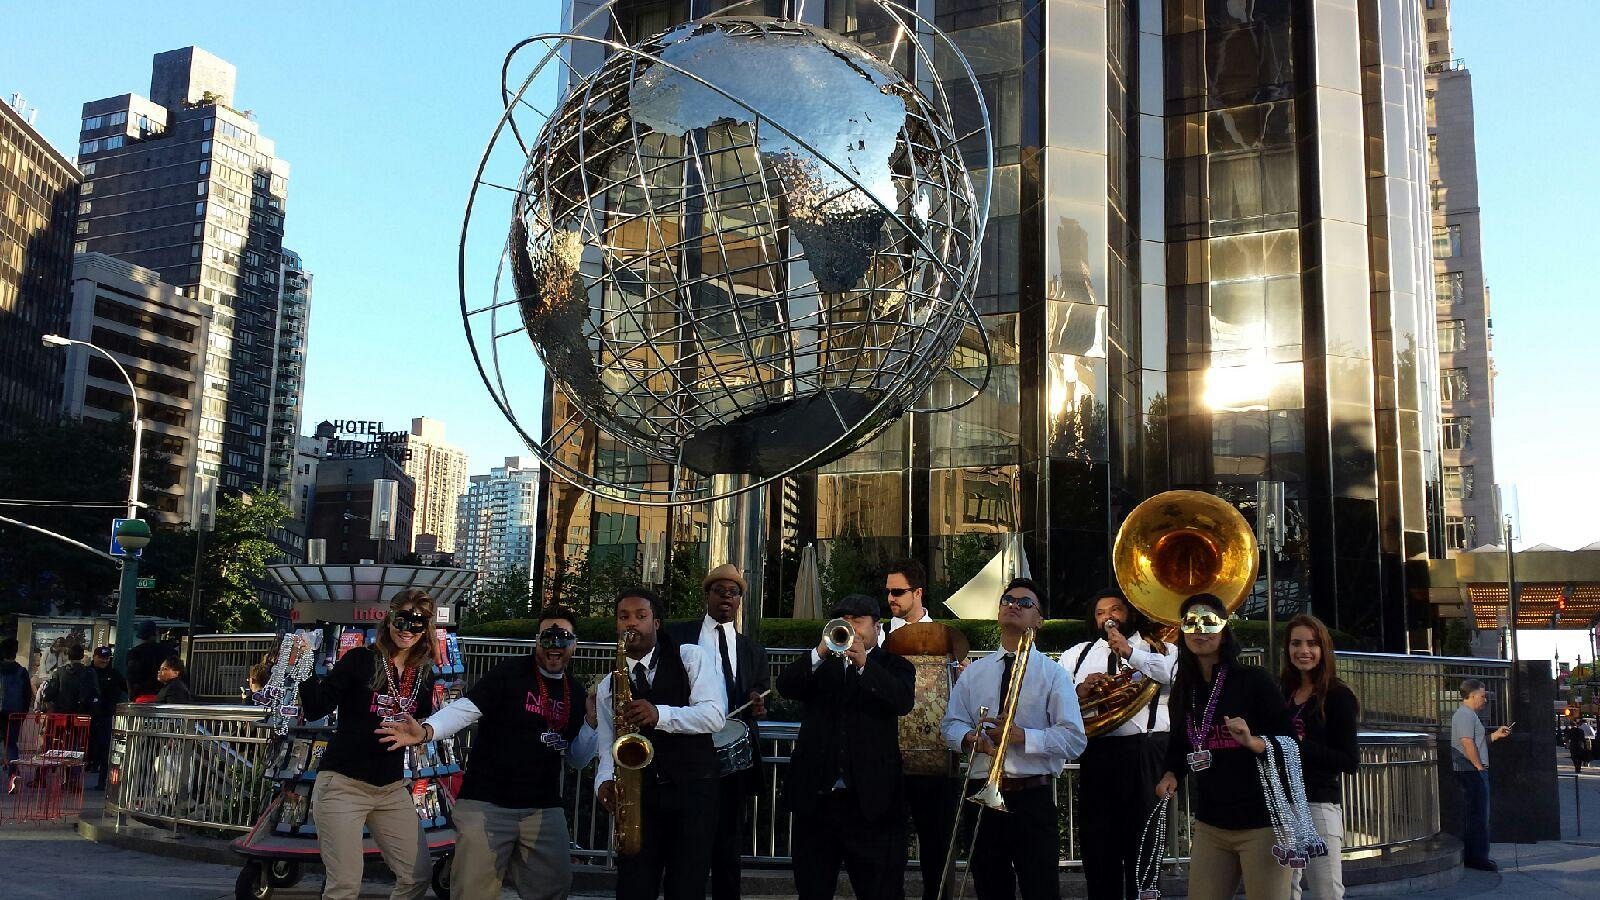 NCIS New Orleans Jazz Band in NYC